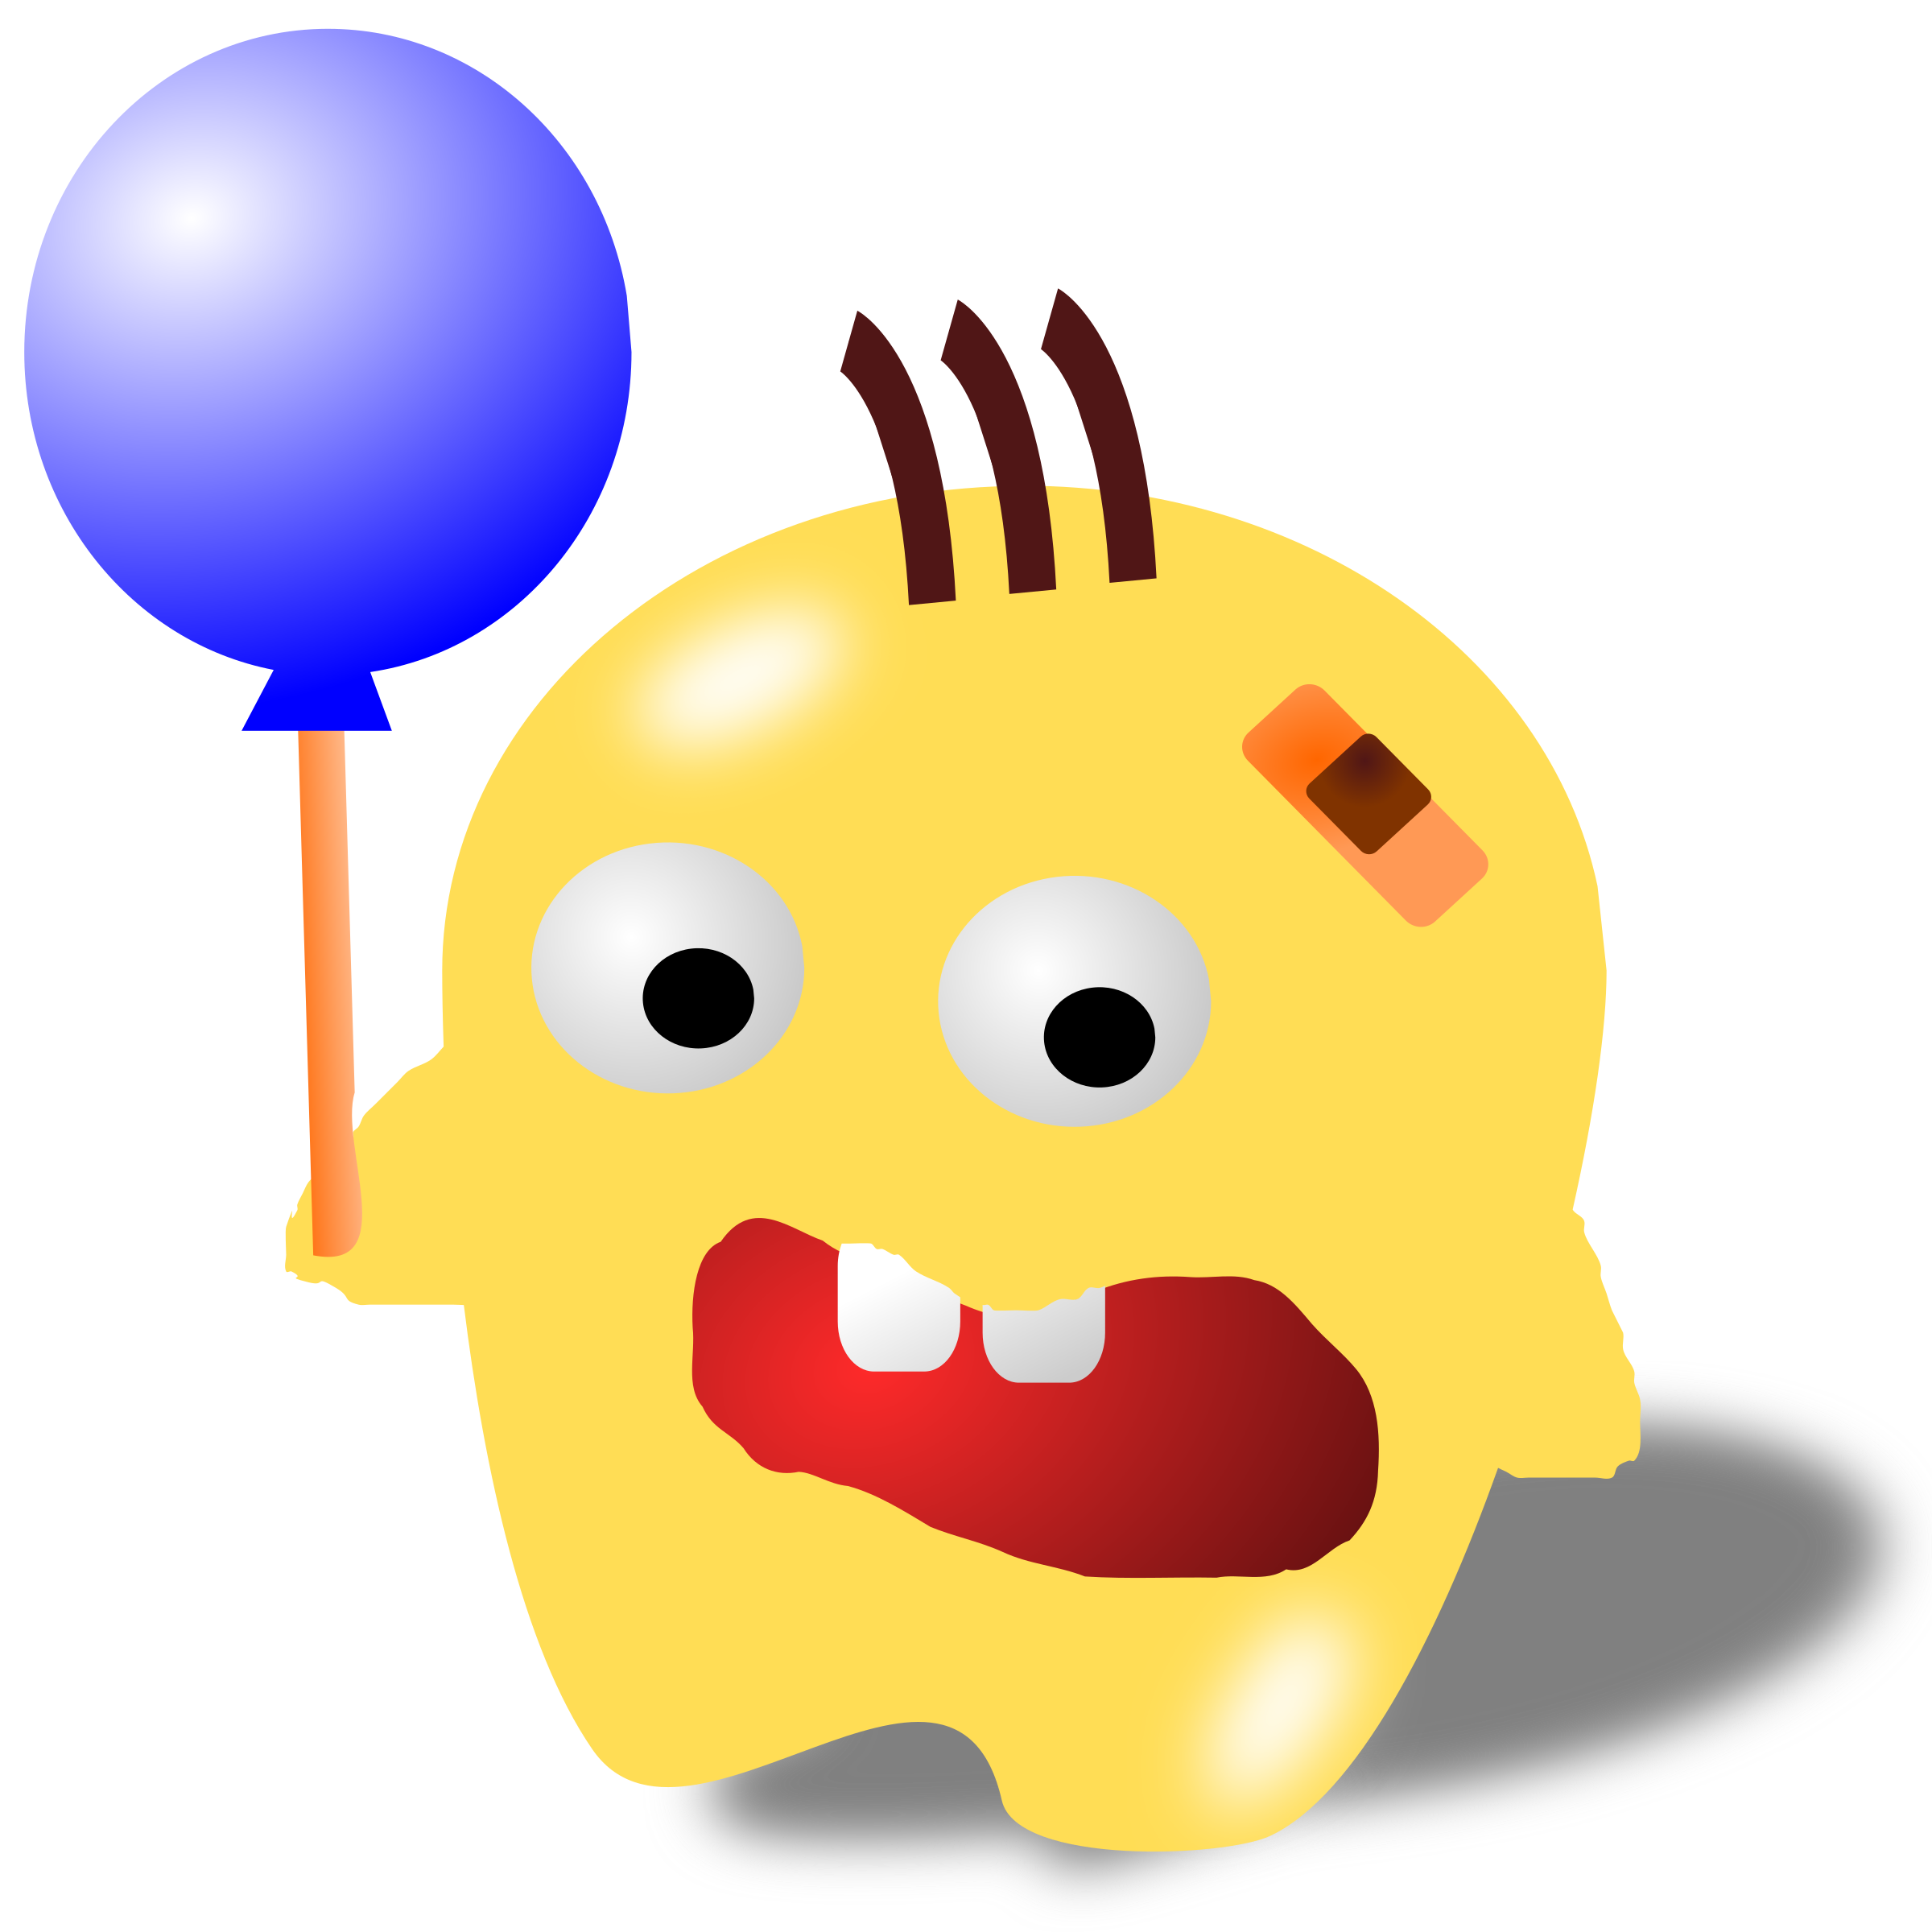 monster with a balloon by yenlung